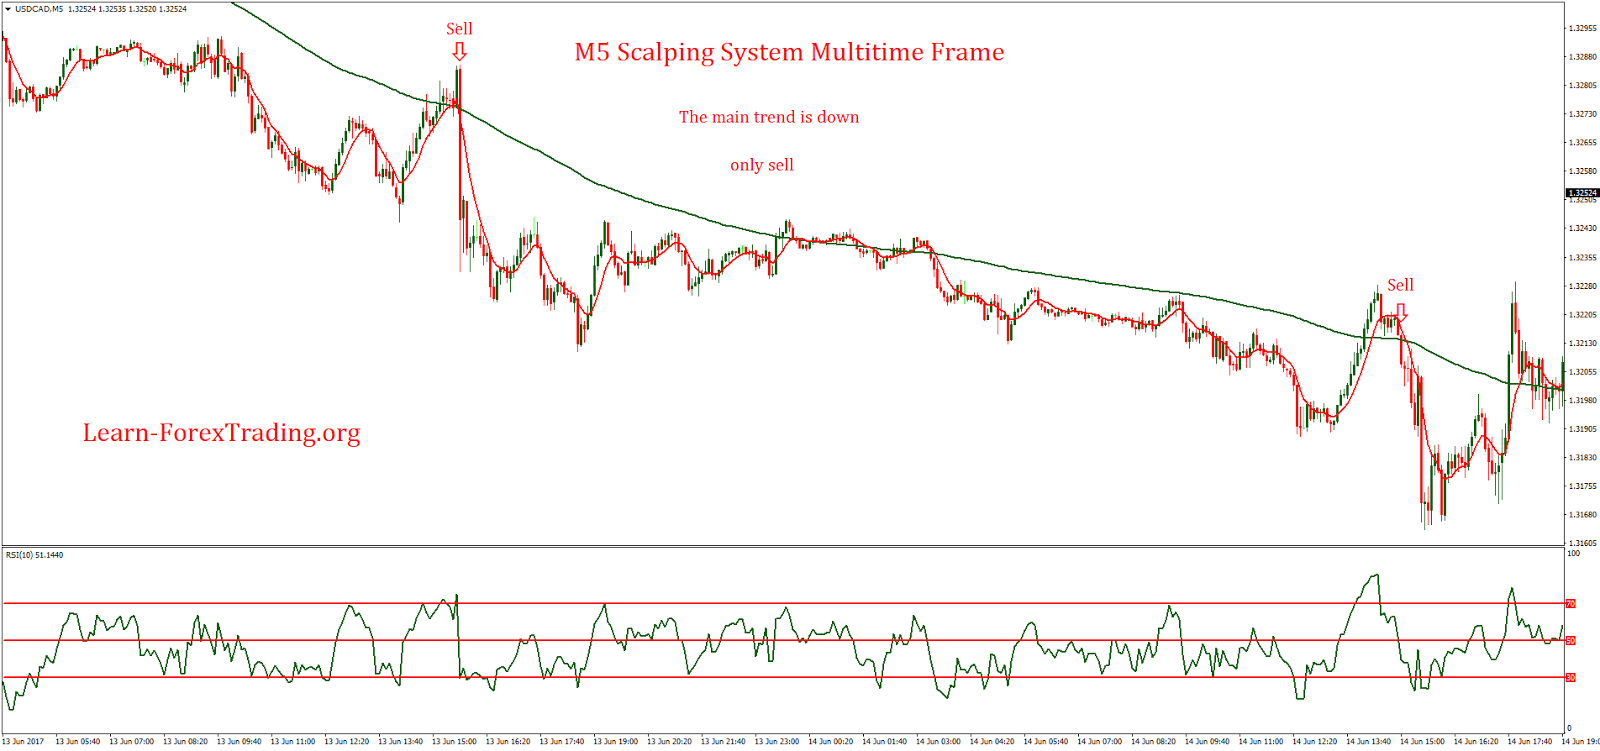 Aw trading system